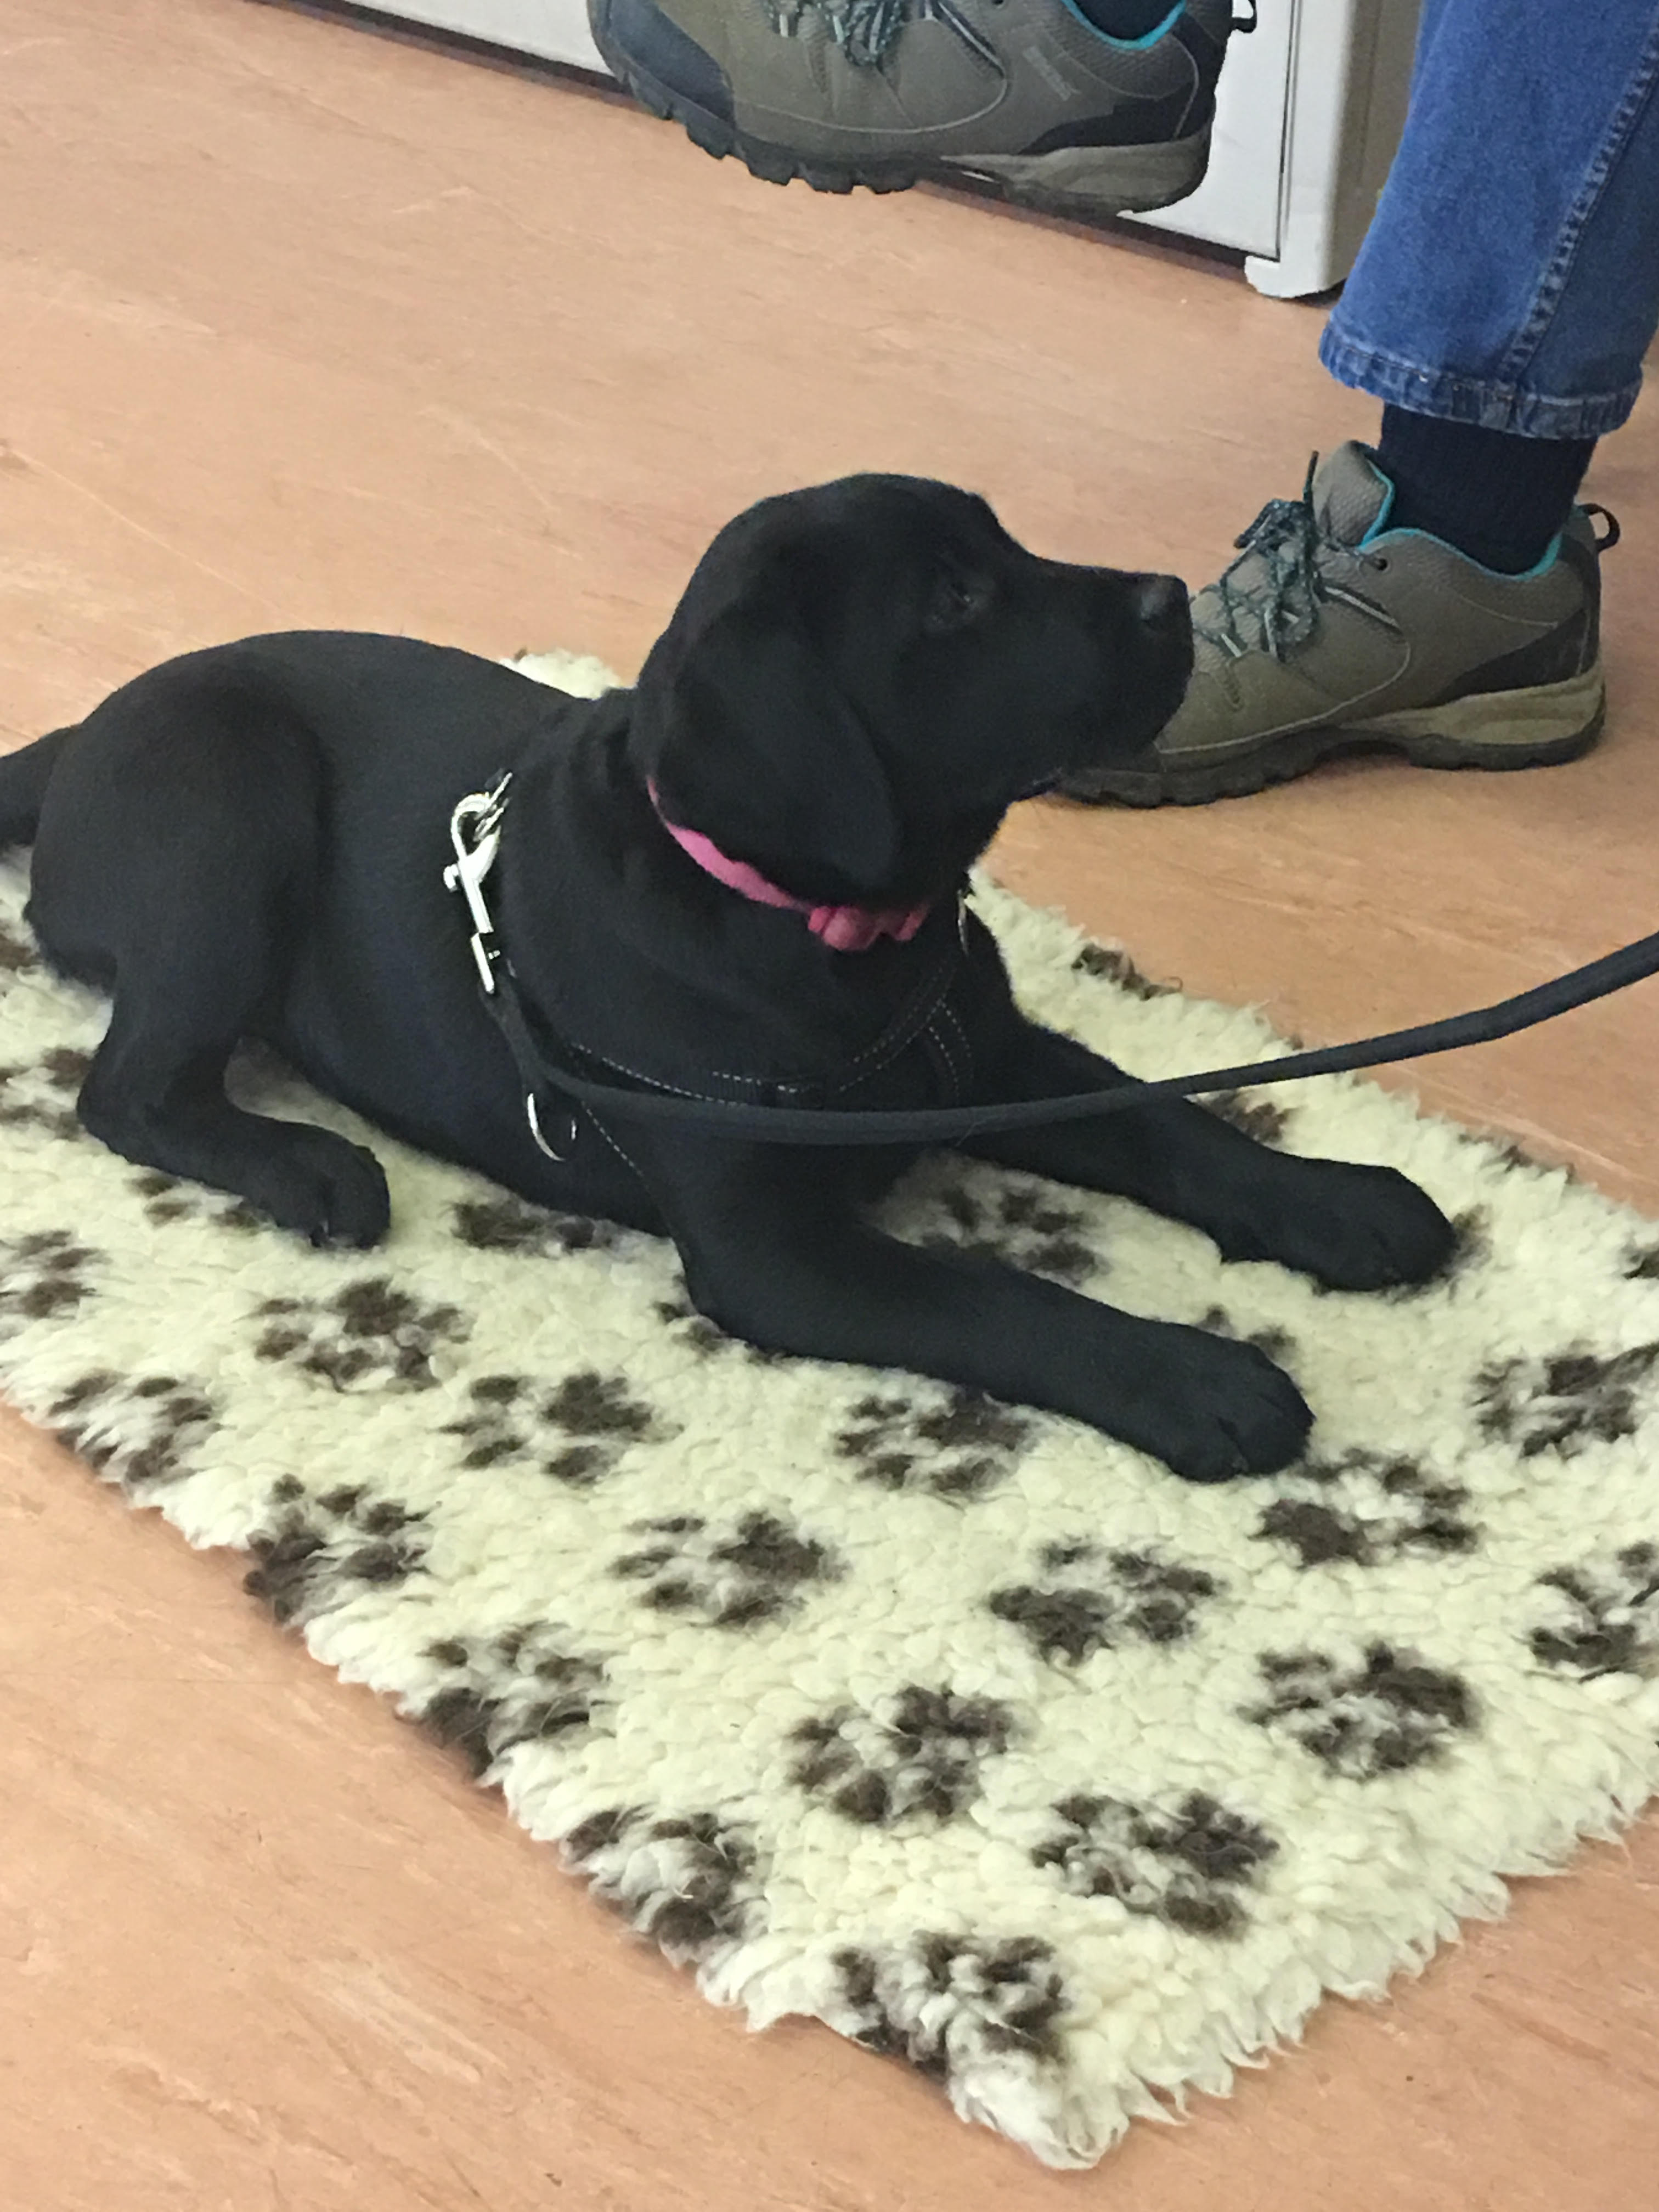 Wagging Tails dog boarding Hearing Dog puppy Neve